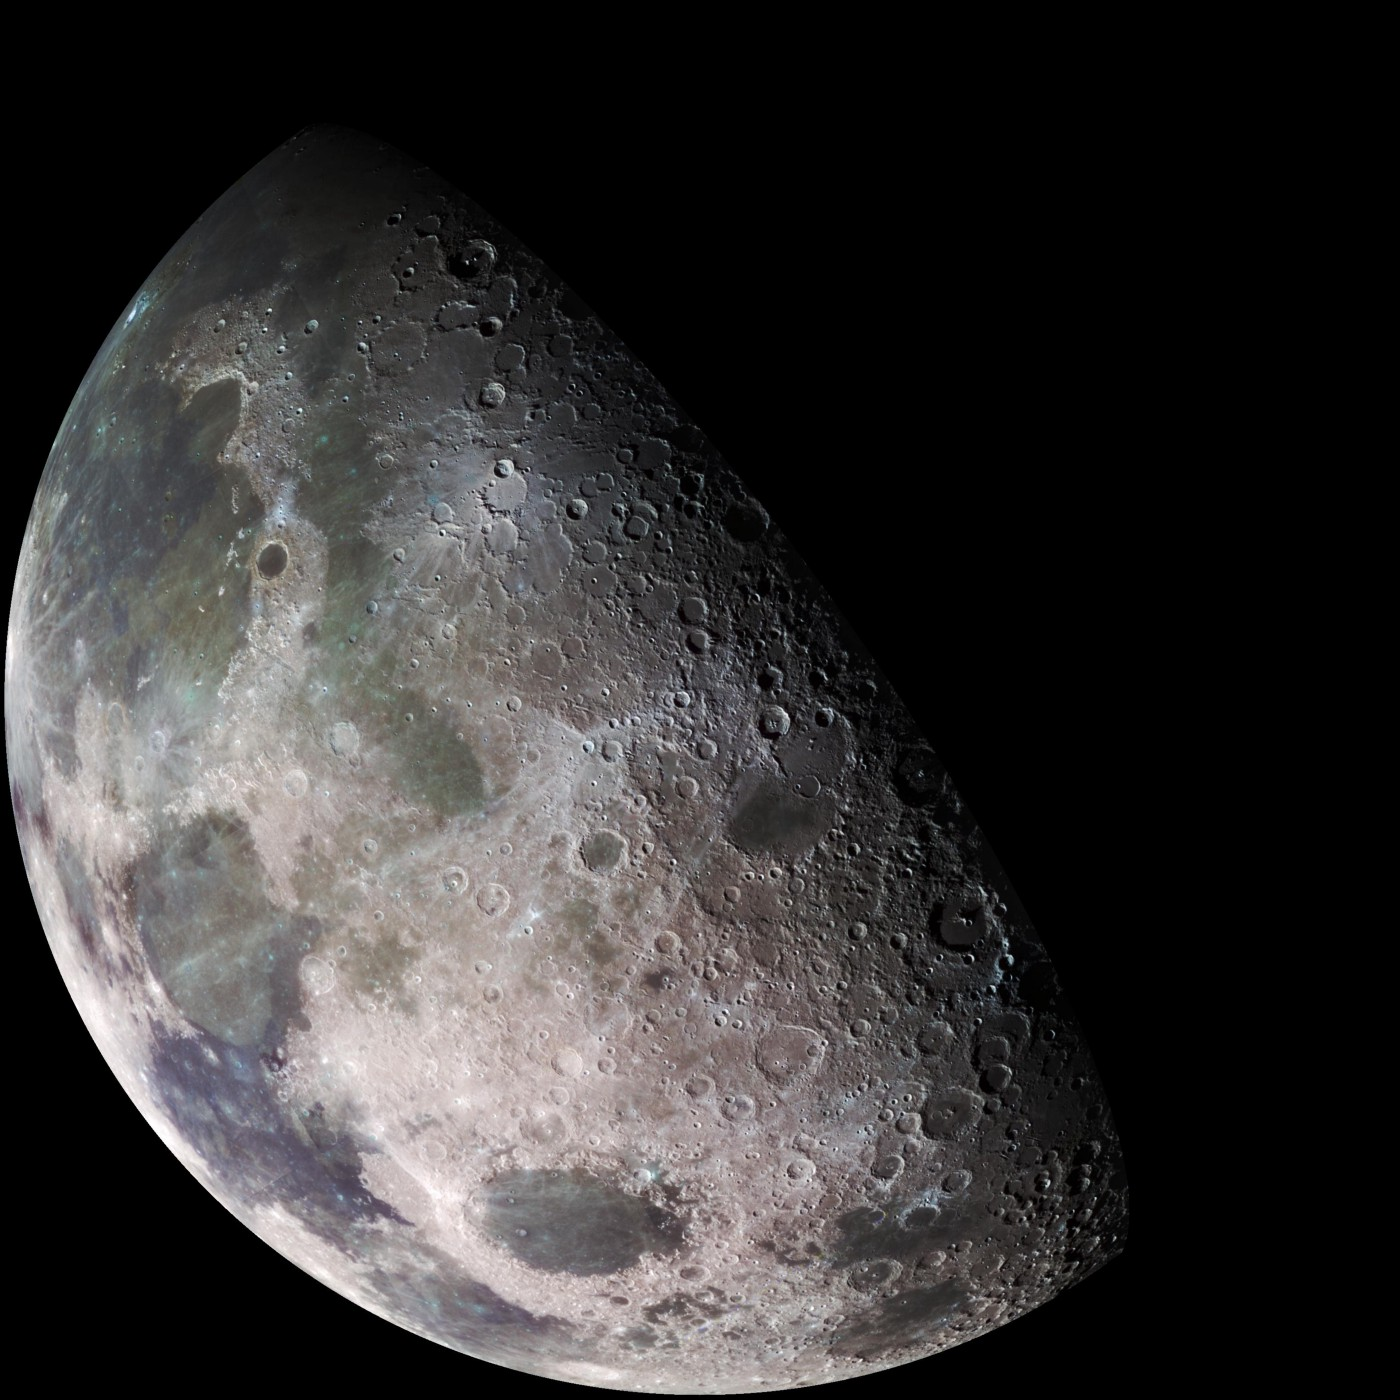 A photograph of the moon from NASA.